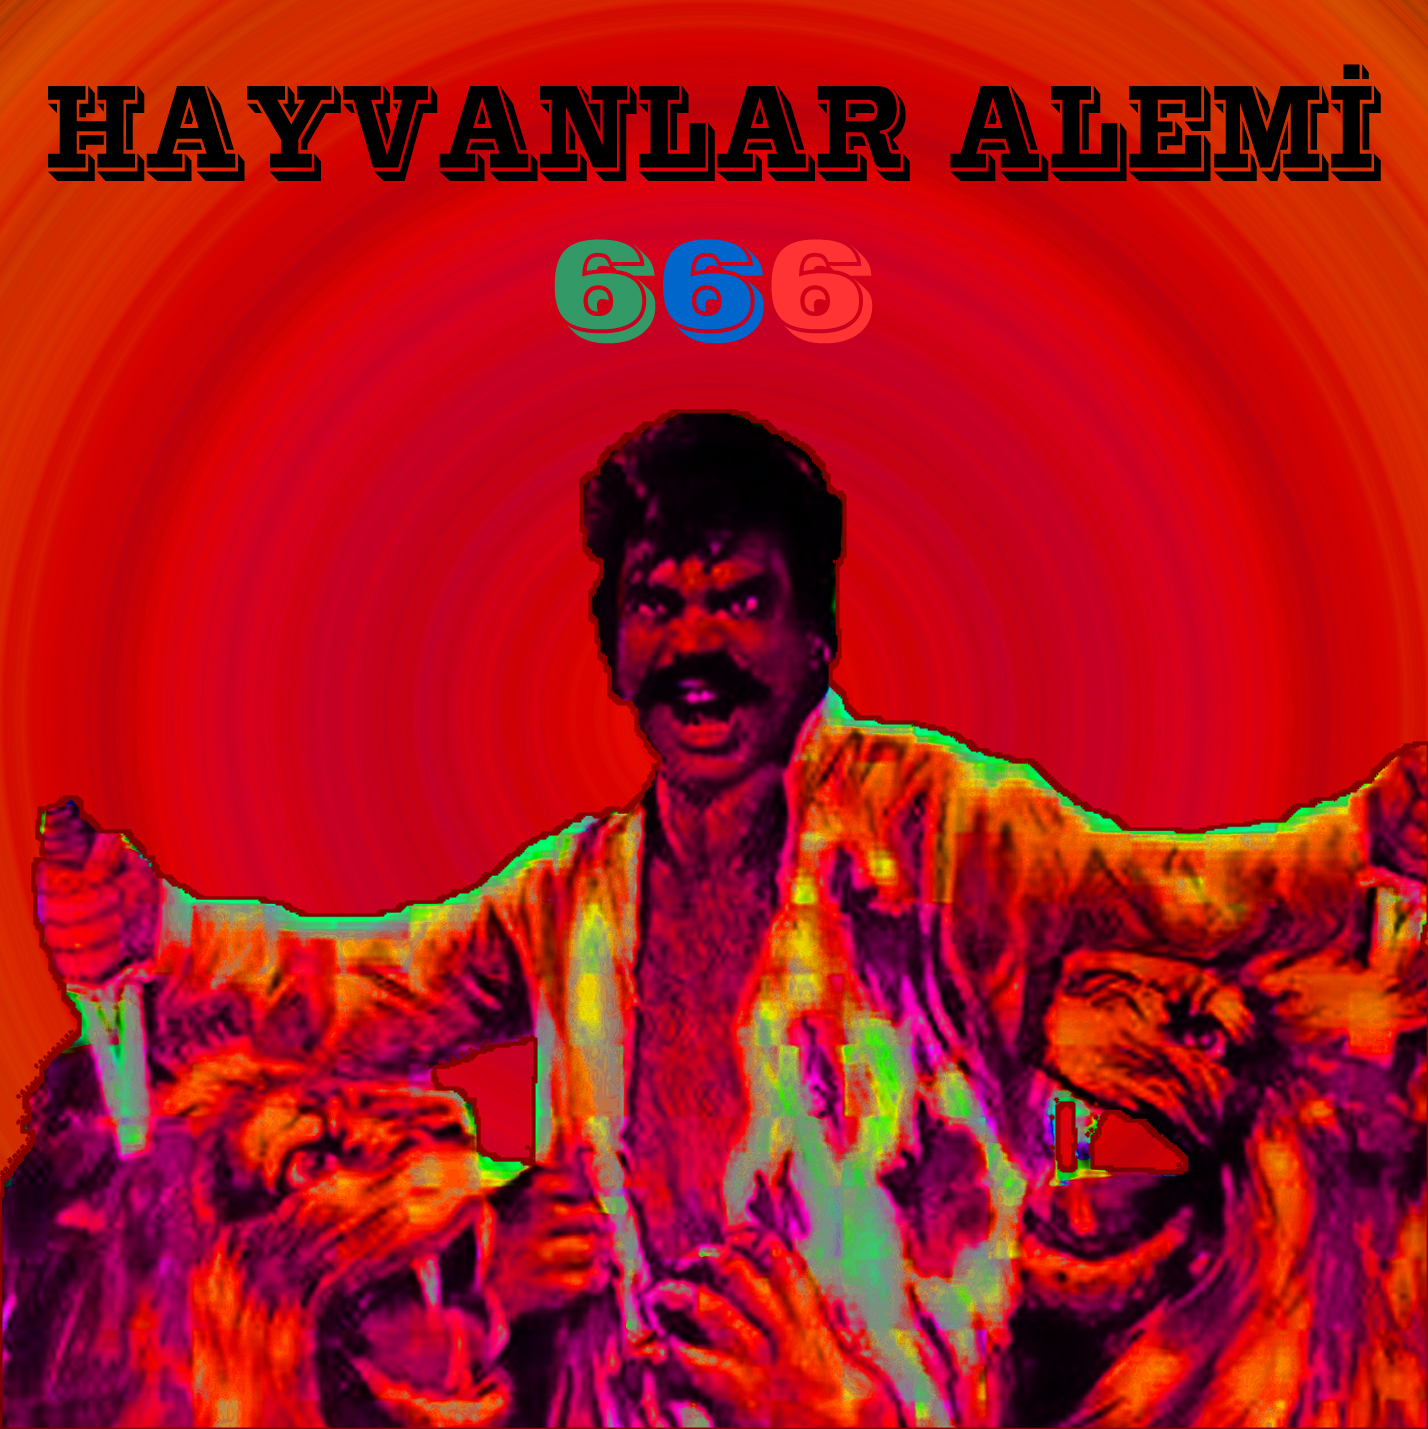 666 Hayvanlar Alemi Free Download Borrow And Streaming